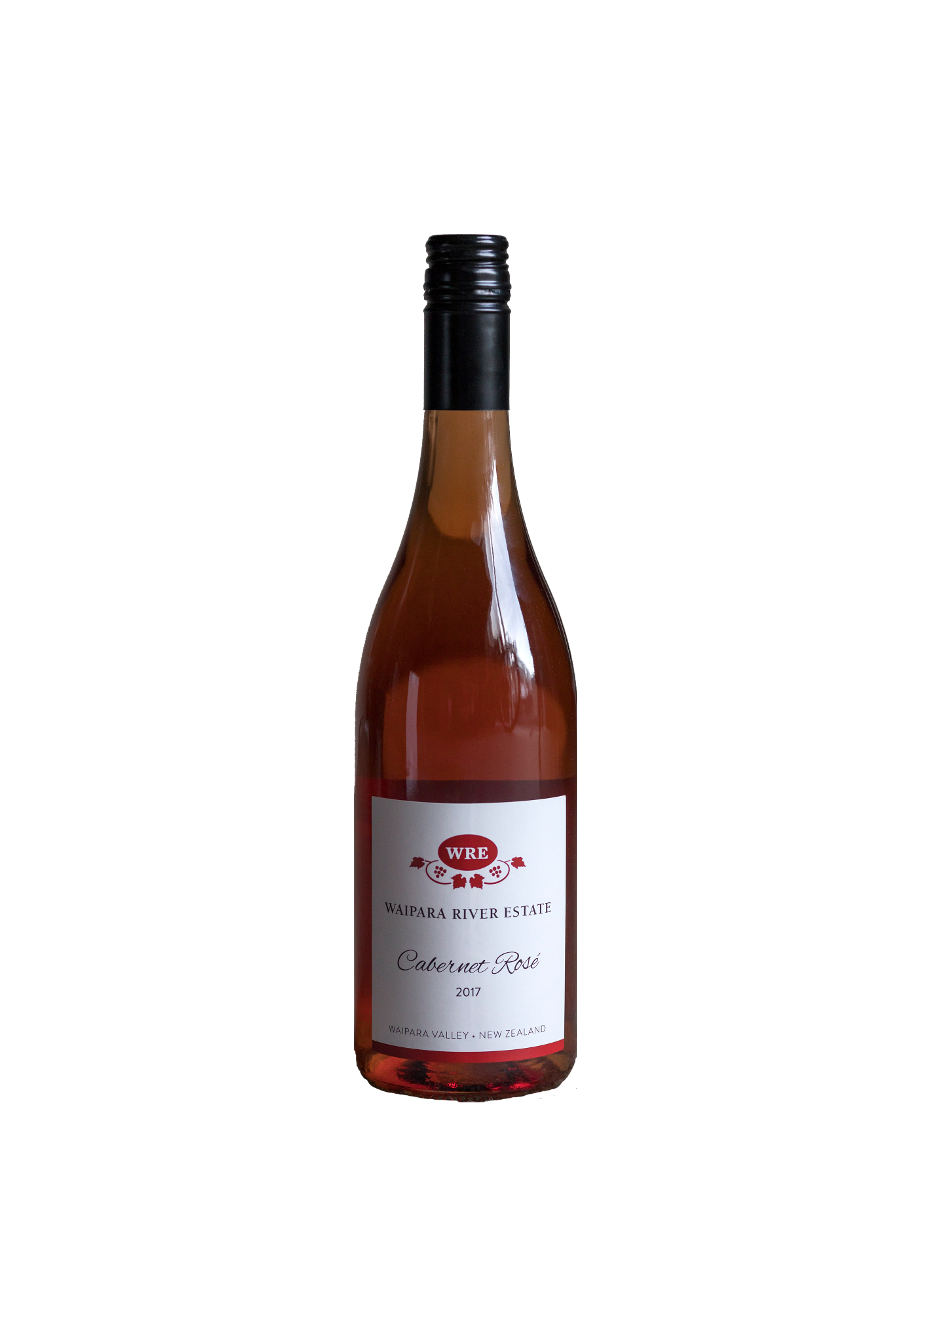 Waipara River Estate Cabernet Rosé 2017